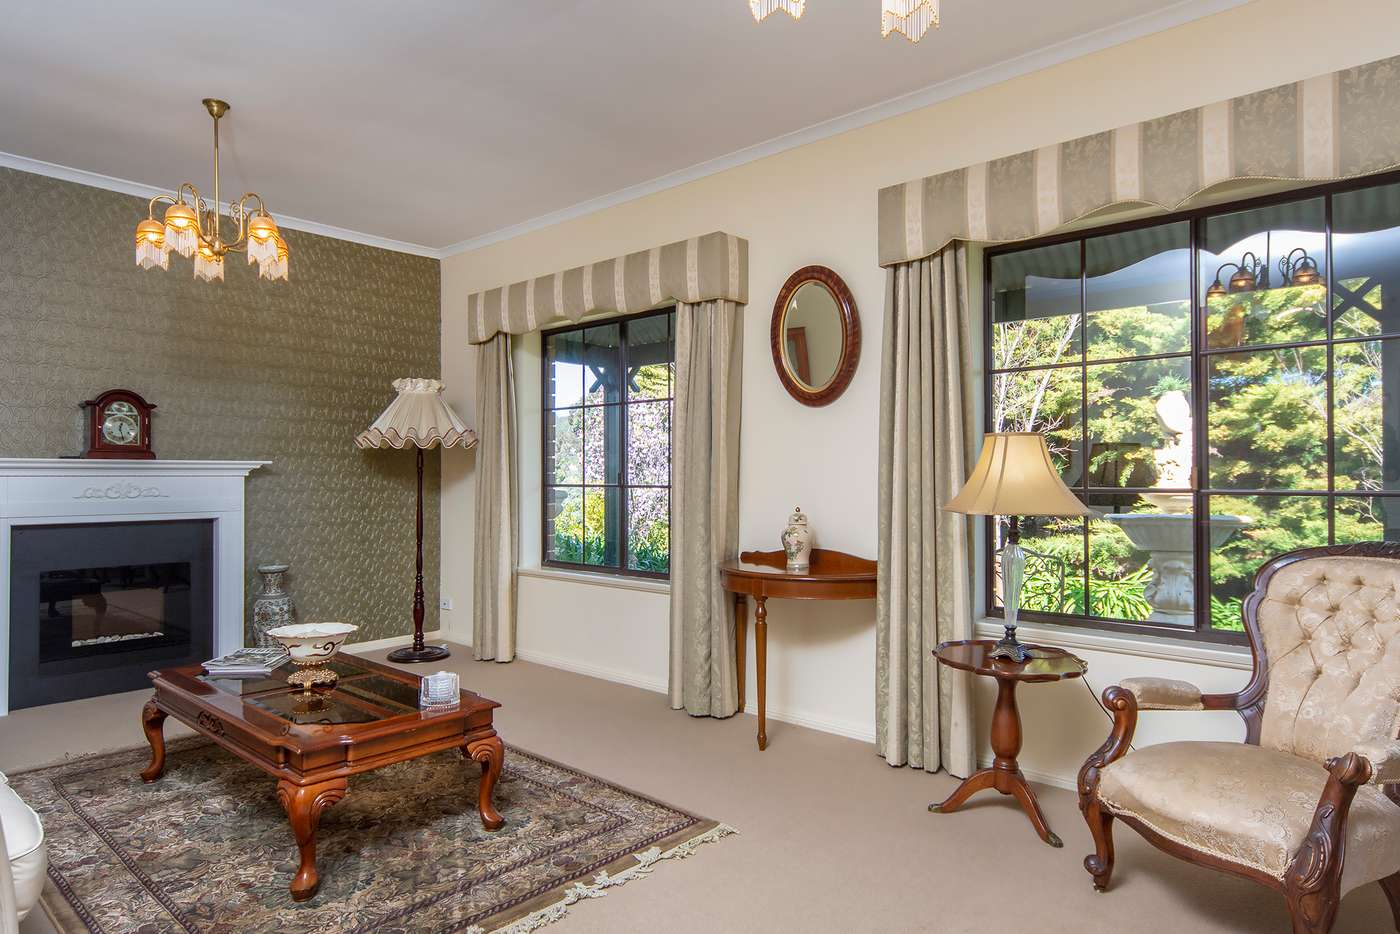 Fifth view of Homely house listing, 36 Monaco Circuit, Aberfoyle Park SA 5159